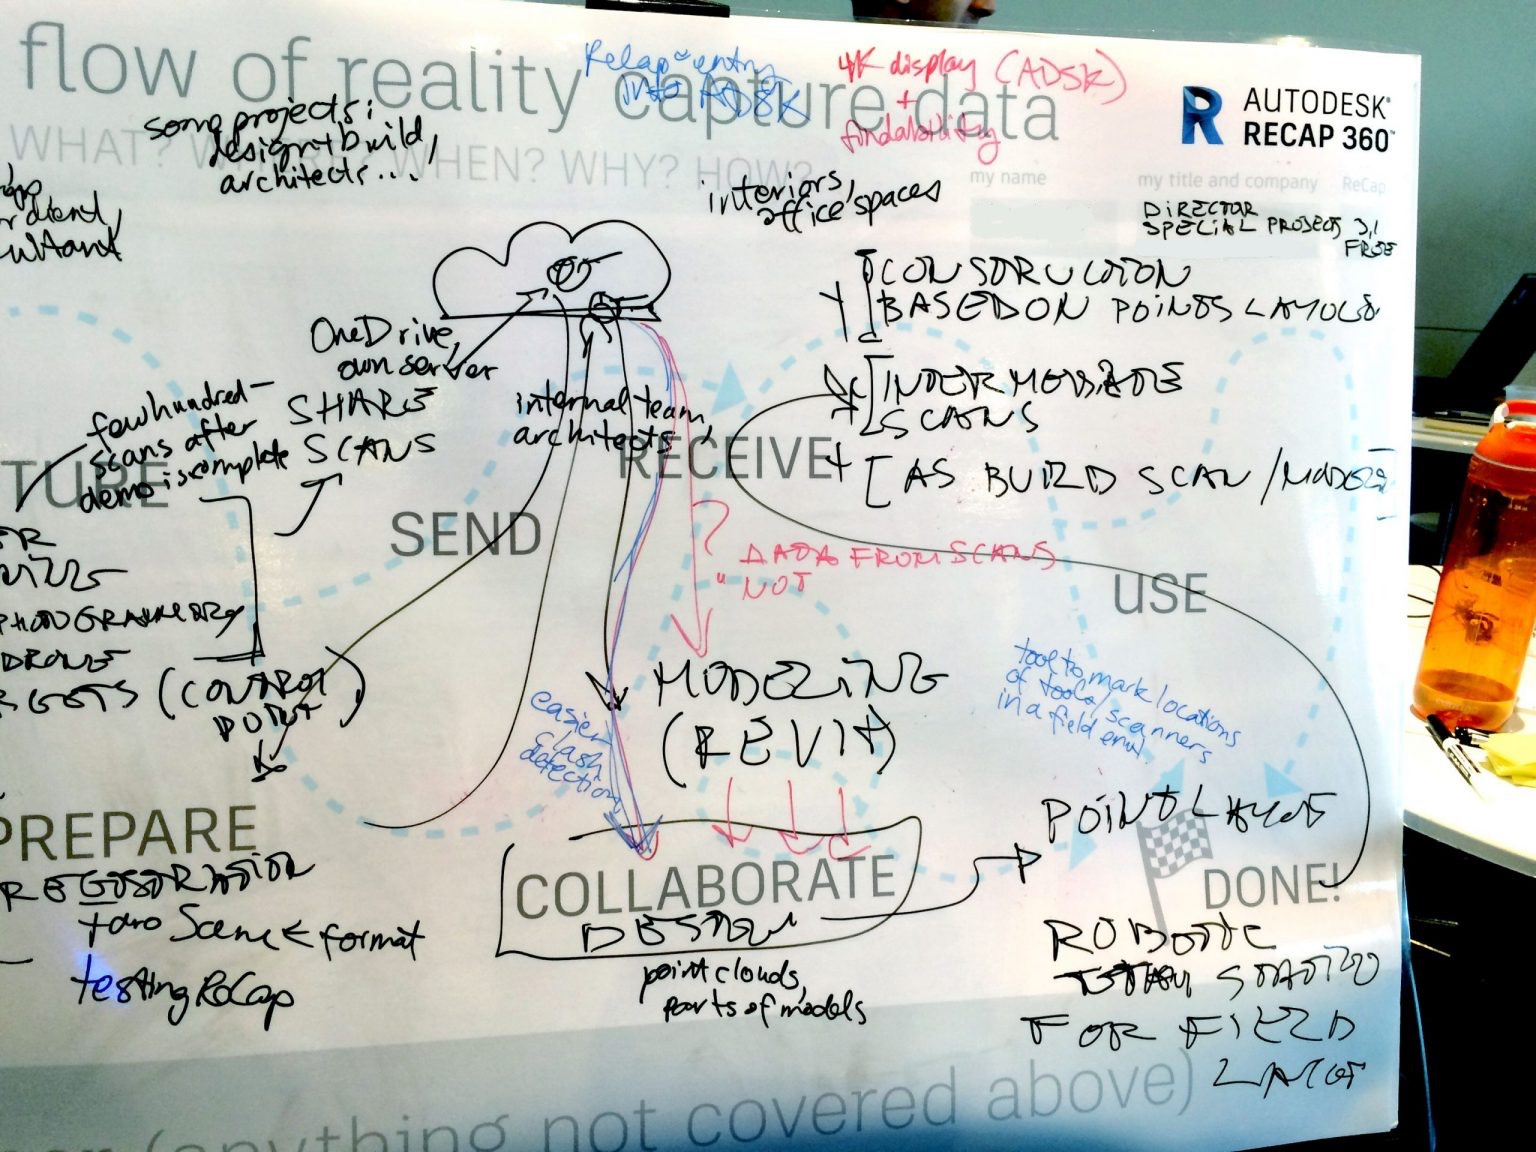 A photo of the whiteboard covered in notes and arrows, including a cloud with rather tentacular arrows between it and chunks of data. The participant himself used different marker colors to differentiate between the types of notes he was writing.